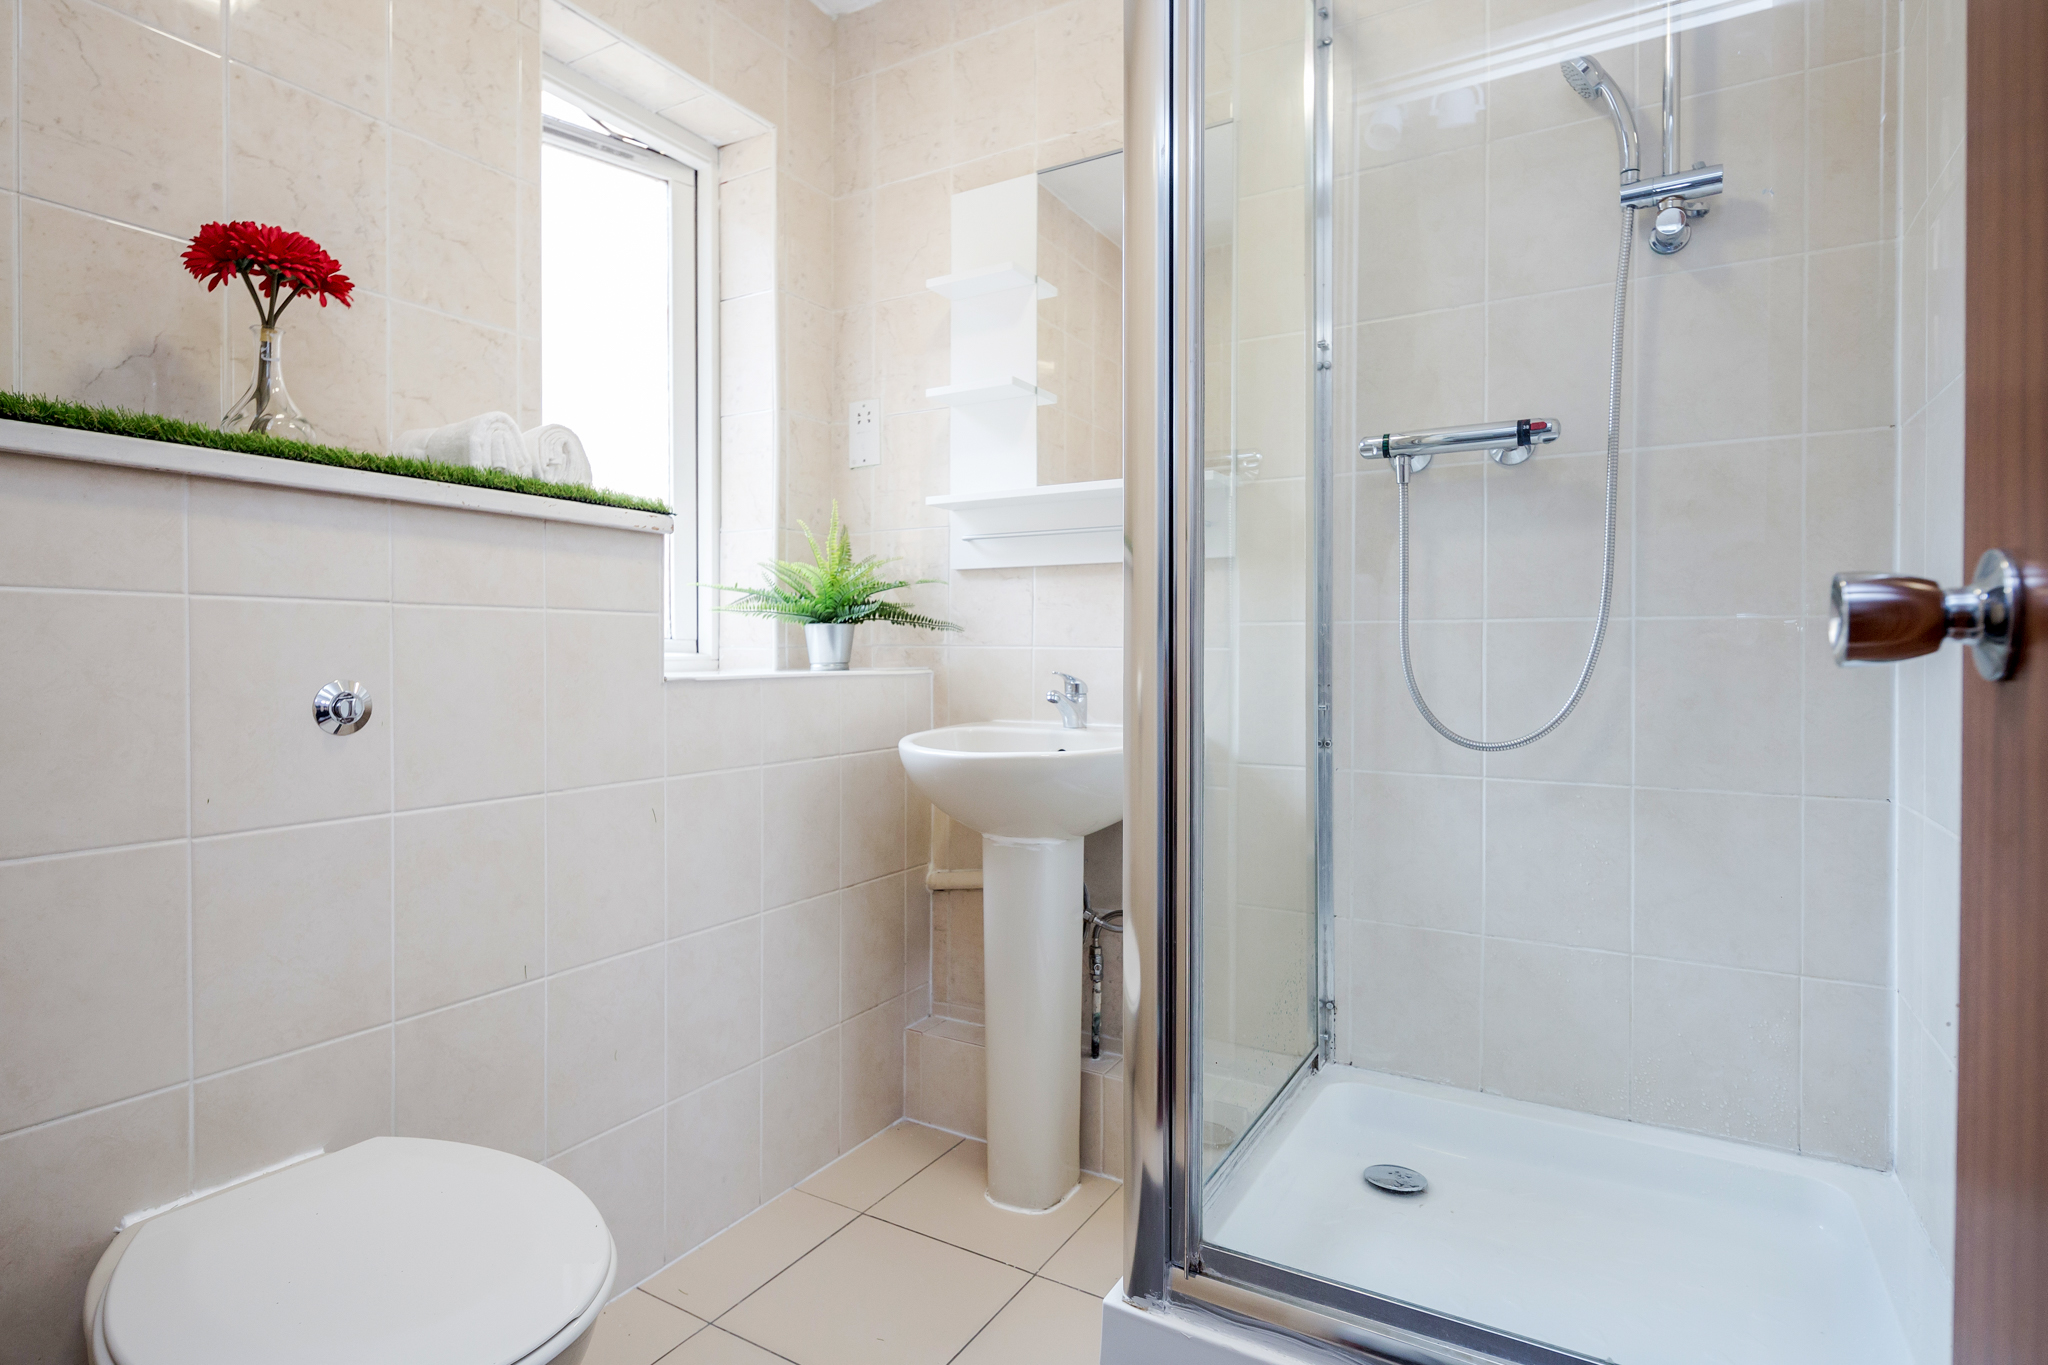 Double room 10 minutes walking from Tower Bridge - (Shared Bathroom) photo 13794090